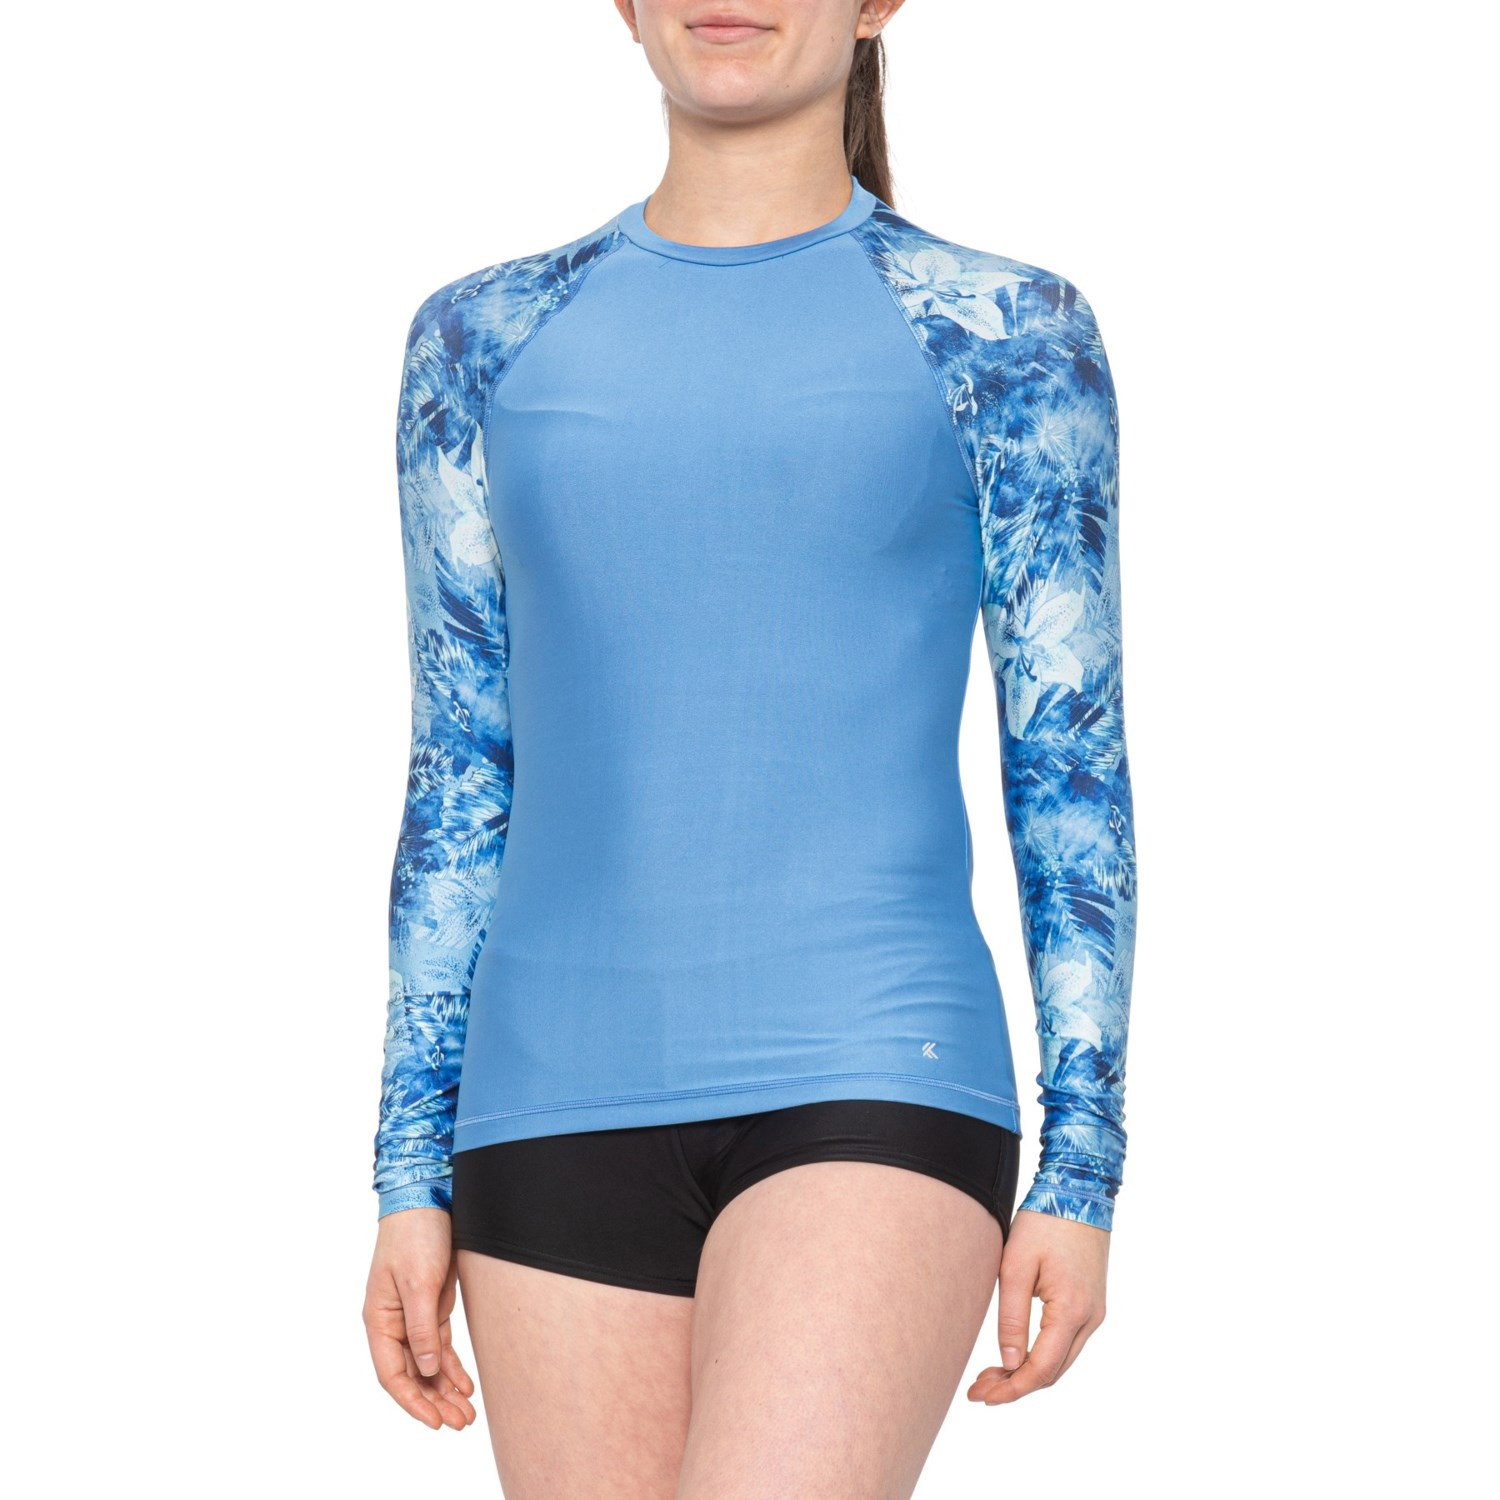 Womens UPF40 Long Sleeve UV Sun Protection Shirts Quick Dry Swim Outdoor T-Shirt for Fishing Running